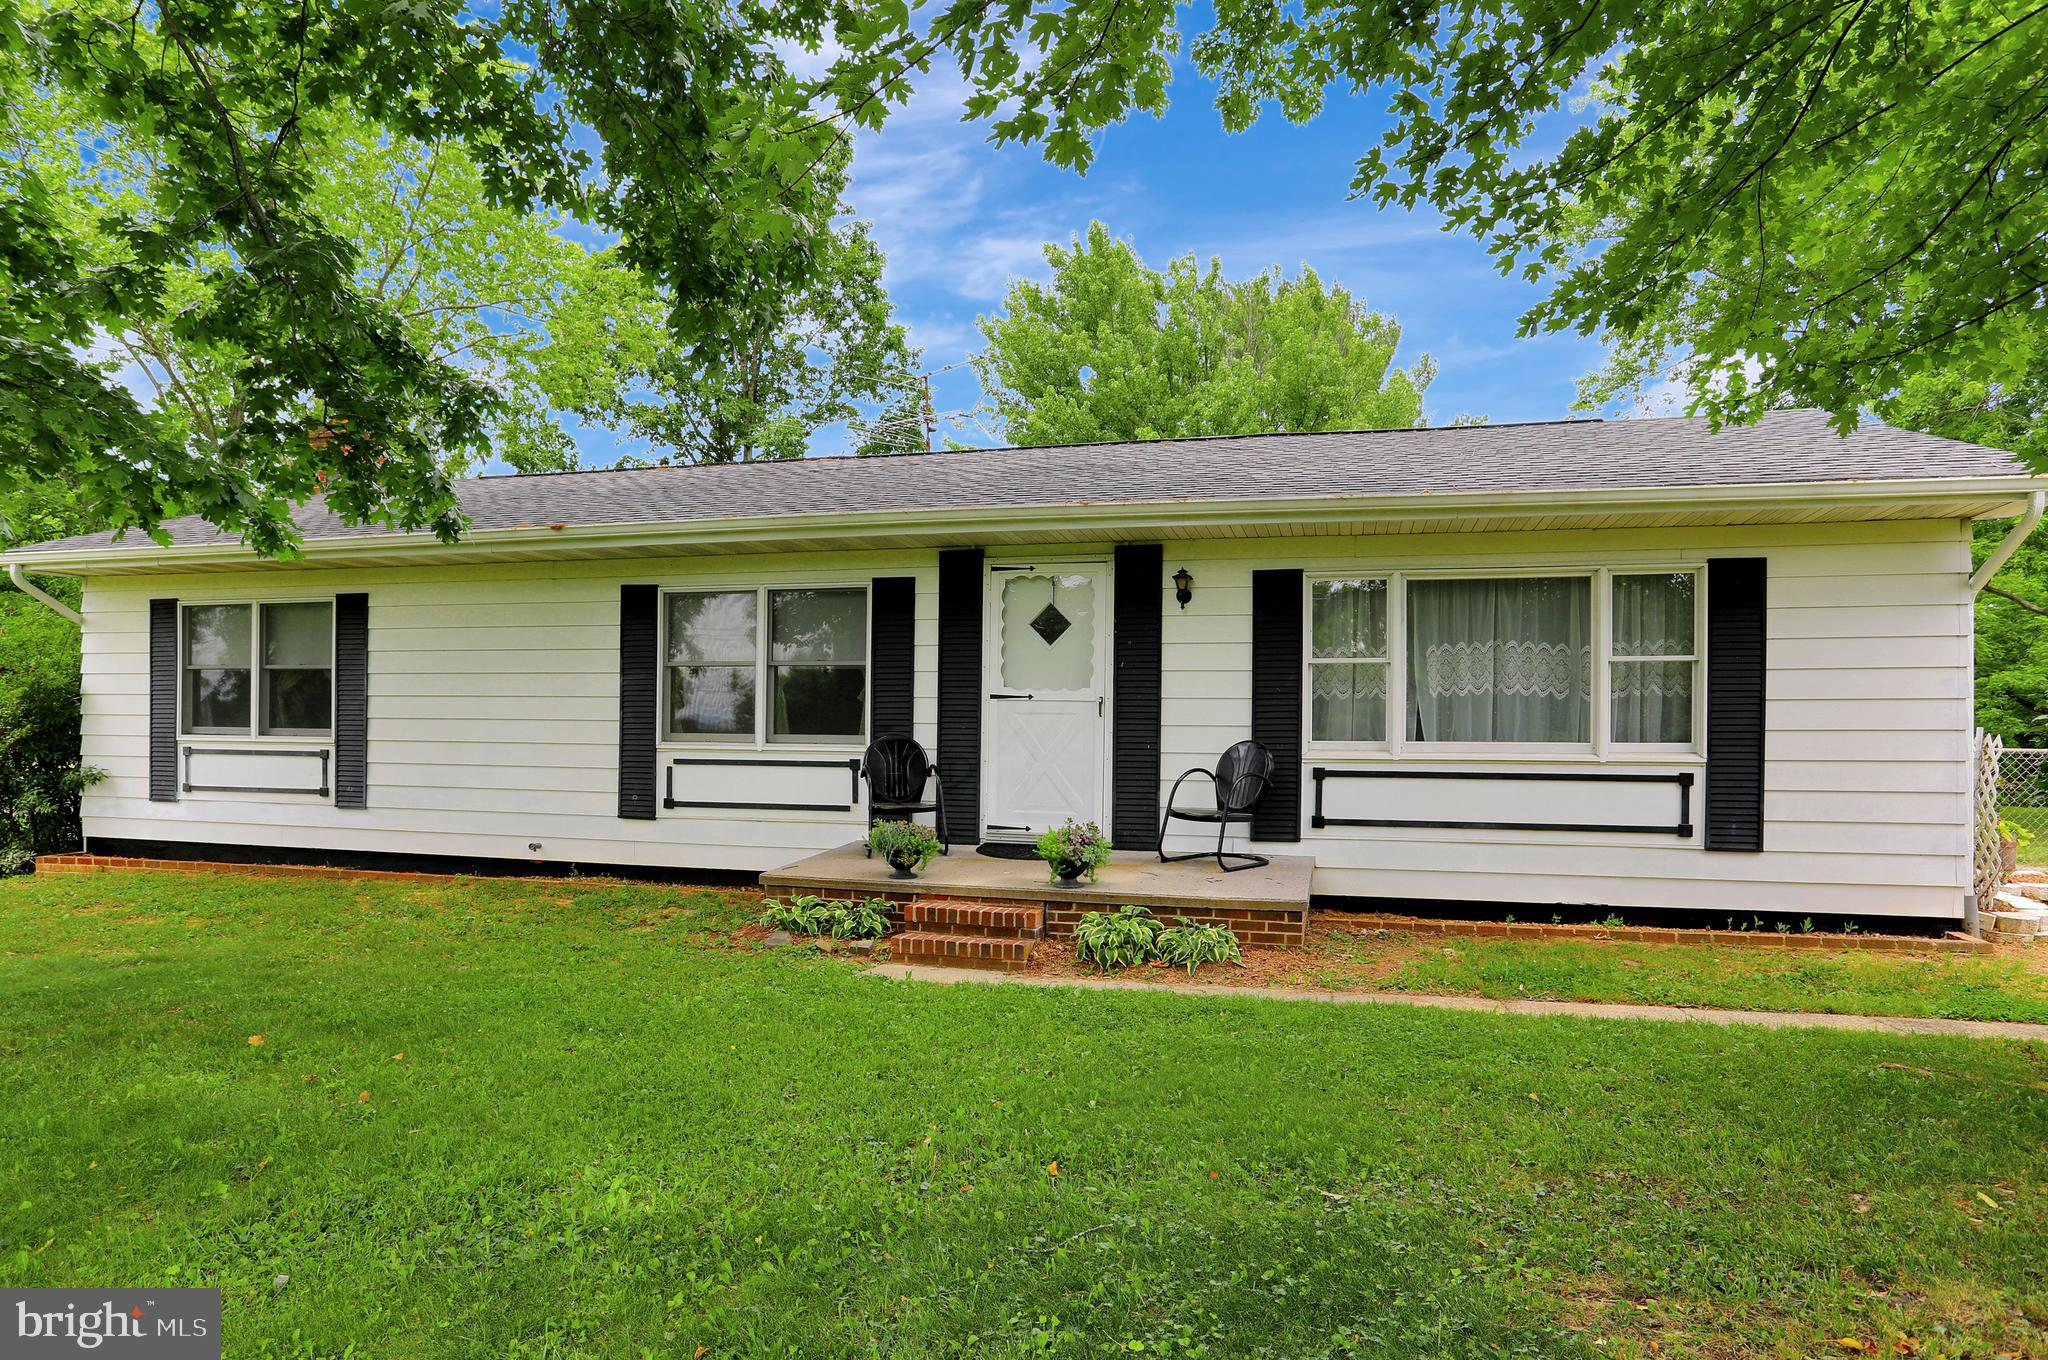 3 Bedroom 1.5 Bath Ranch Home offering 1500 Sq Ft of living space with a 2 car detached over-sized g